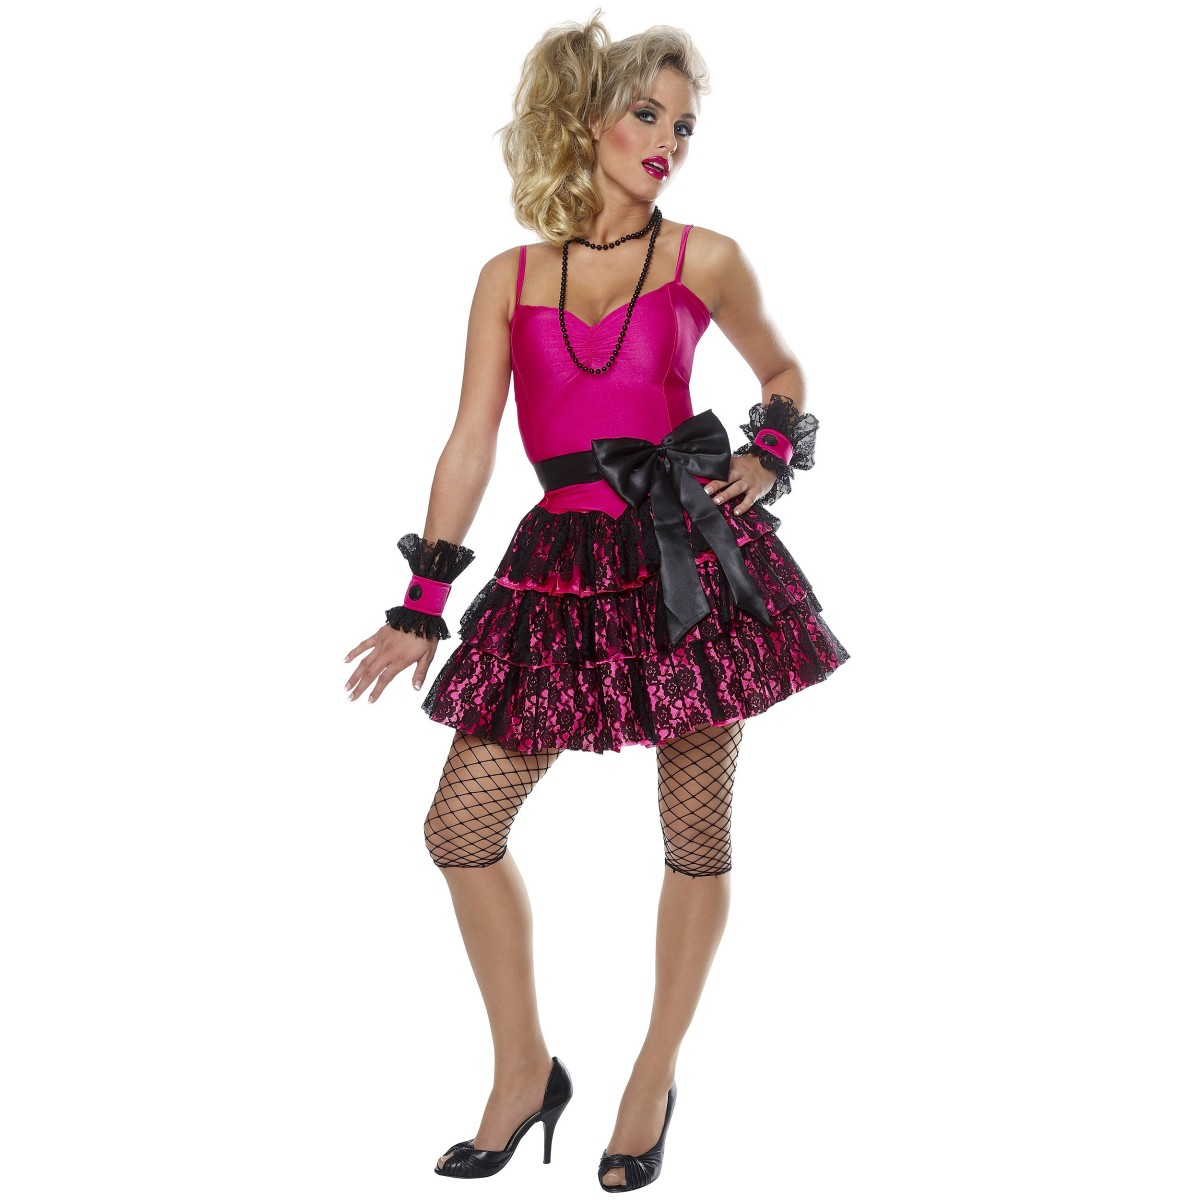 Dress Up: 888 80s Madonna POP Star Material Girl Dress UP Costume